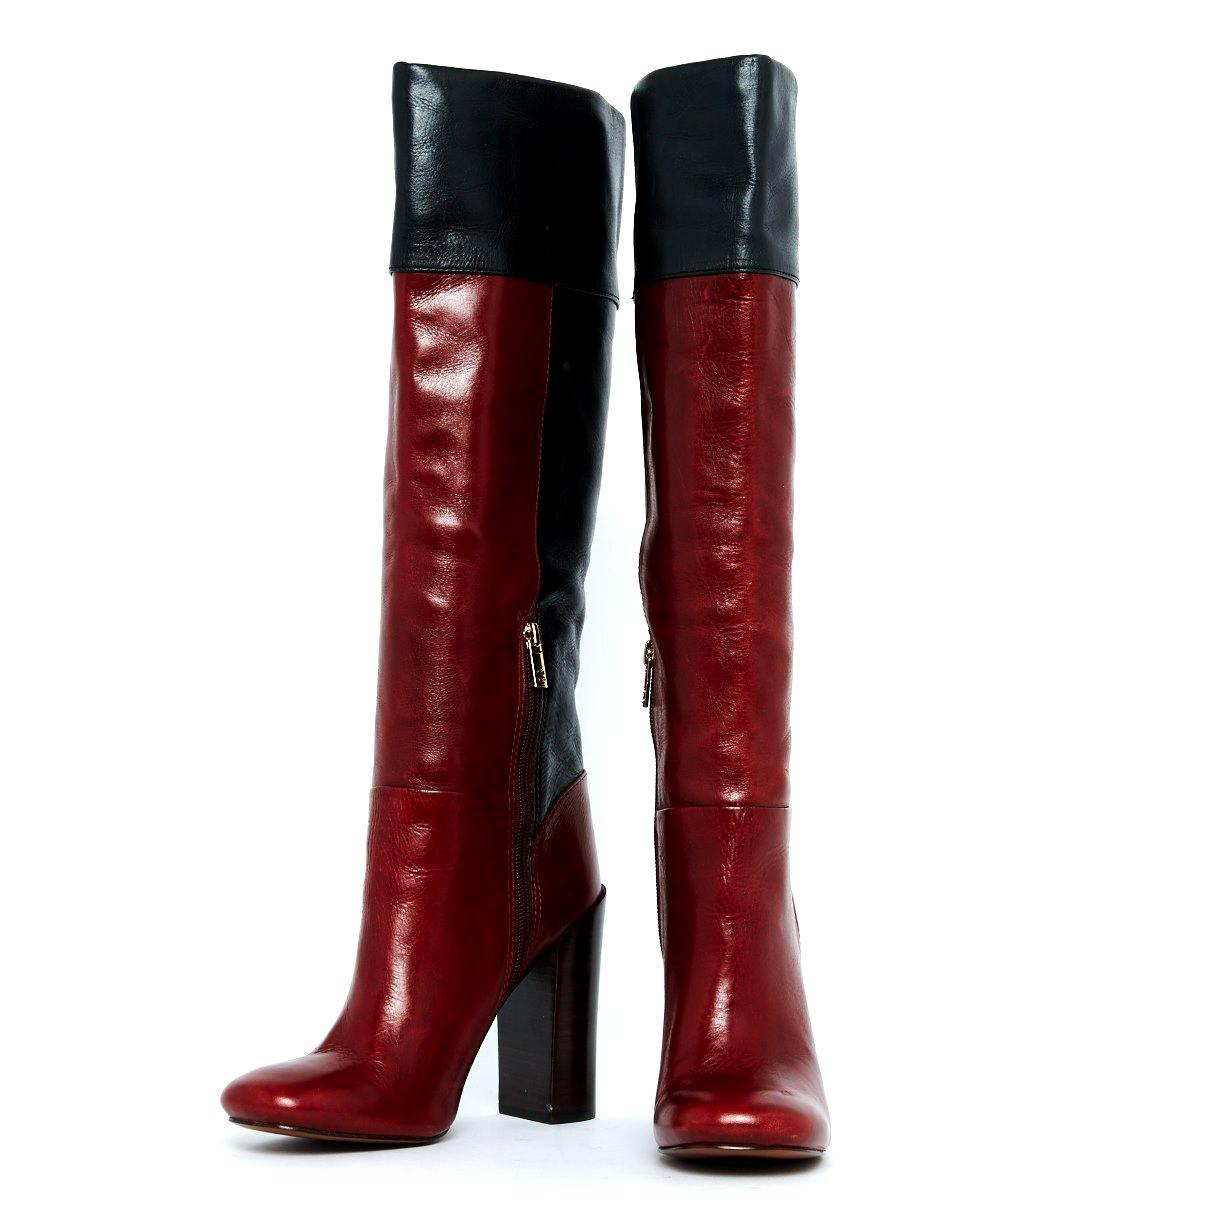 8796f6116 Tory Burch - Red Leather Boots - Lyst. View fullscreen